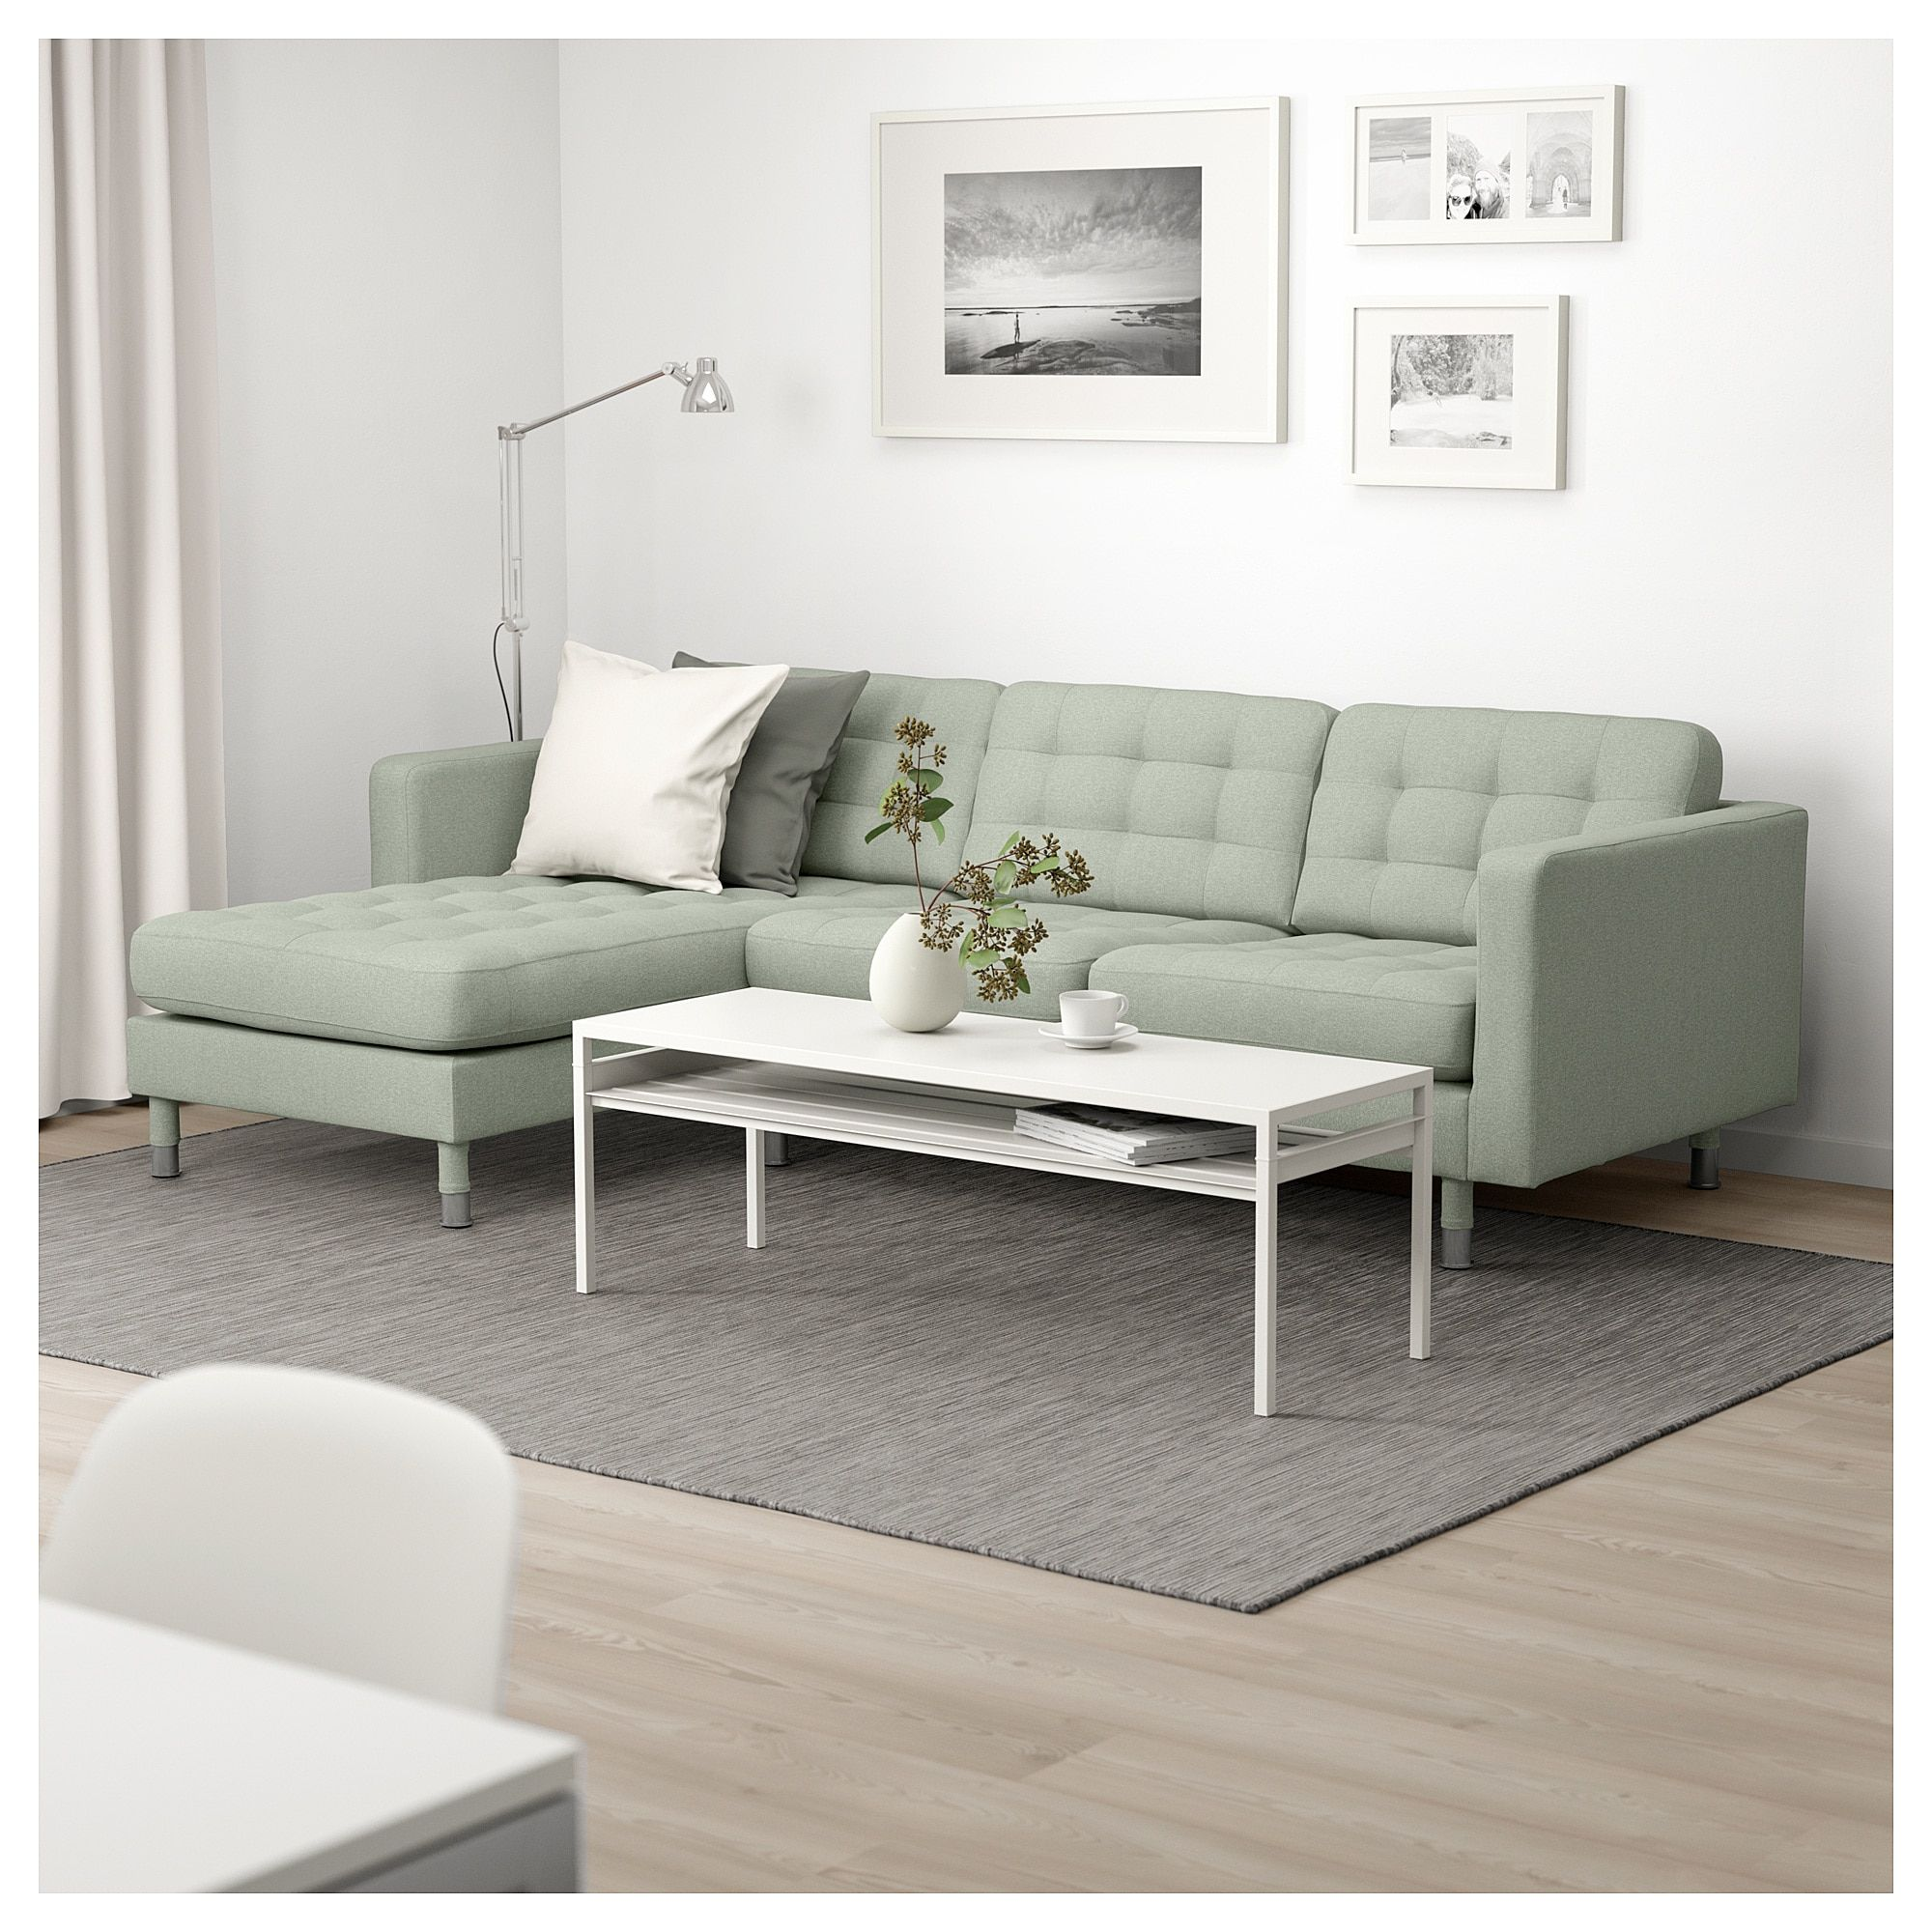 Landskrona Sofa With Chaise Gunnared Light Green Metal